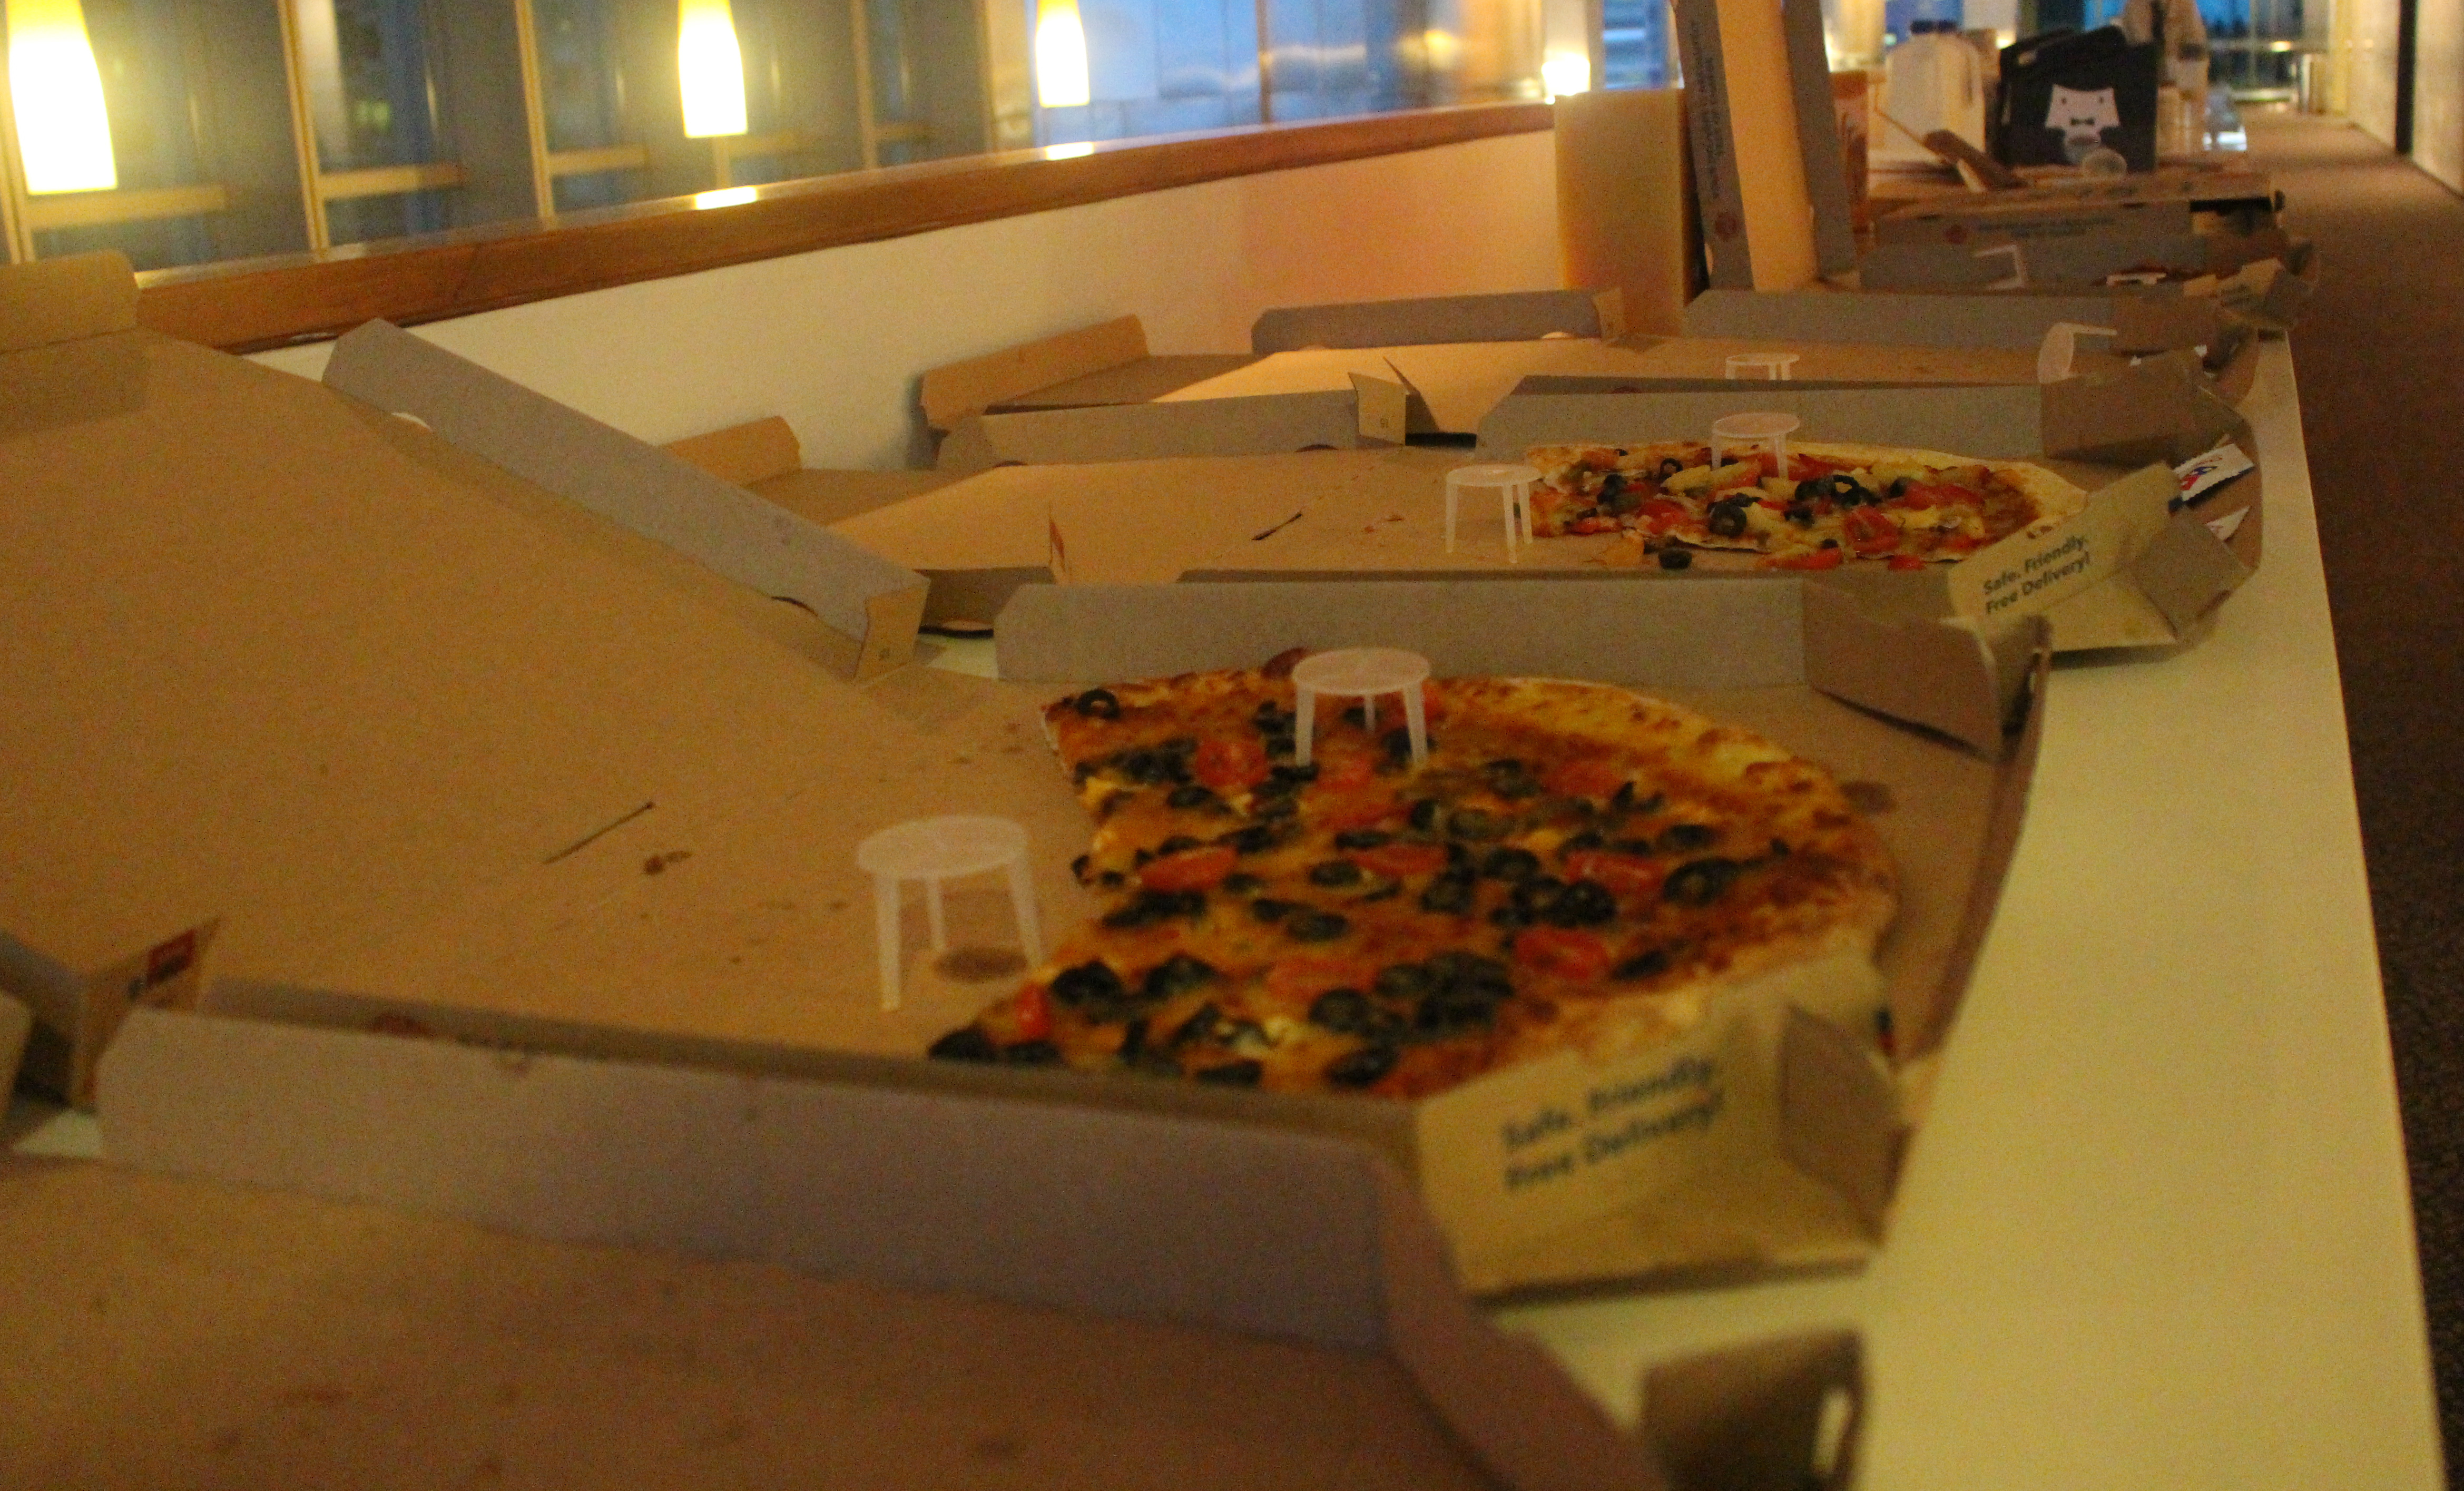 Pizzas and coffees at our Cybersecurity event. Tasty refreshments for all!